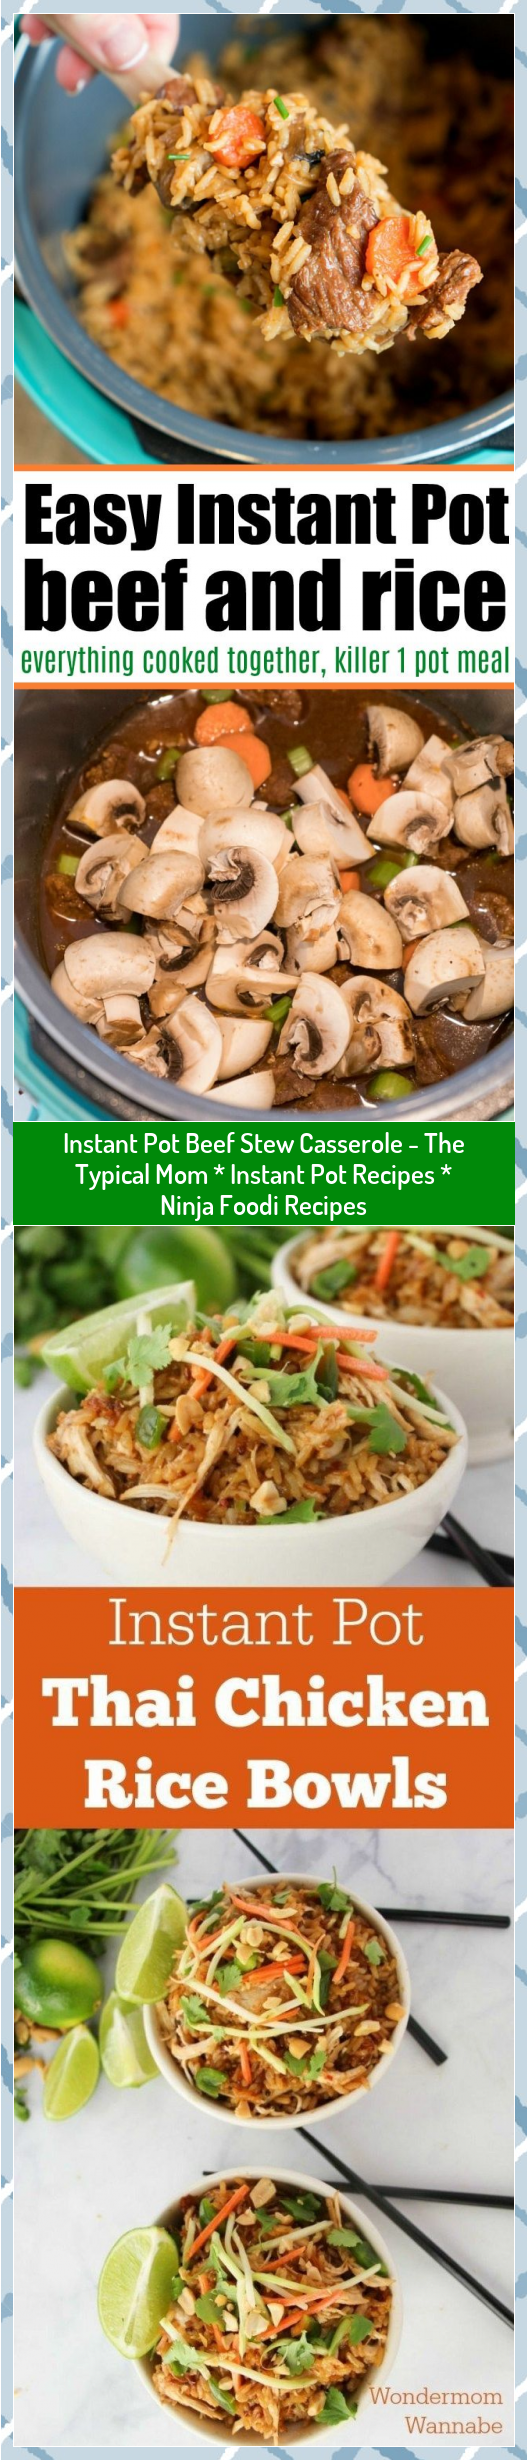 Instant Pot Beef Stew Casserole - The Typical Mom * Instant Pot Recipes * Ninja Foodi Recipes #beef #Casserole #Foodi #Instant #Mom #Ninja #Pot #Recipes #stew #Typical